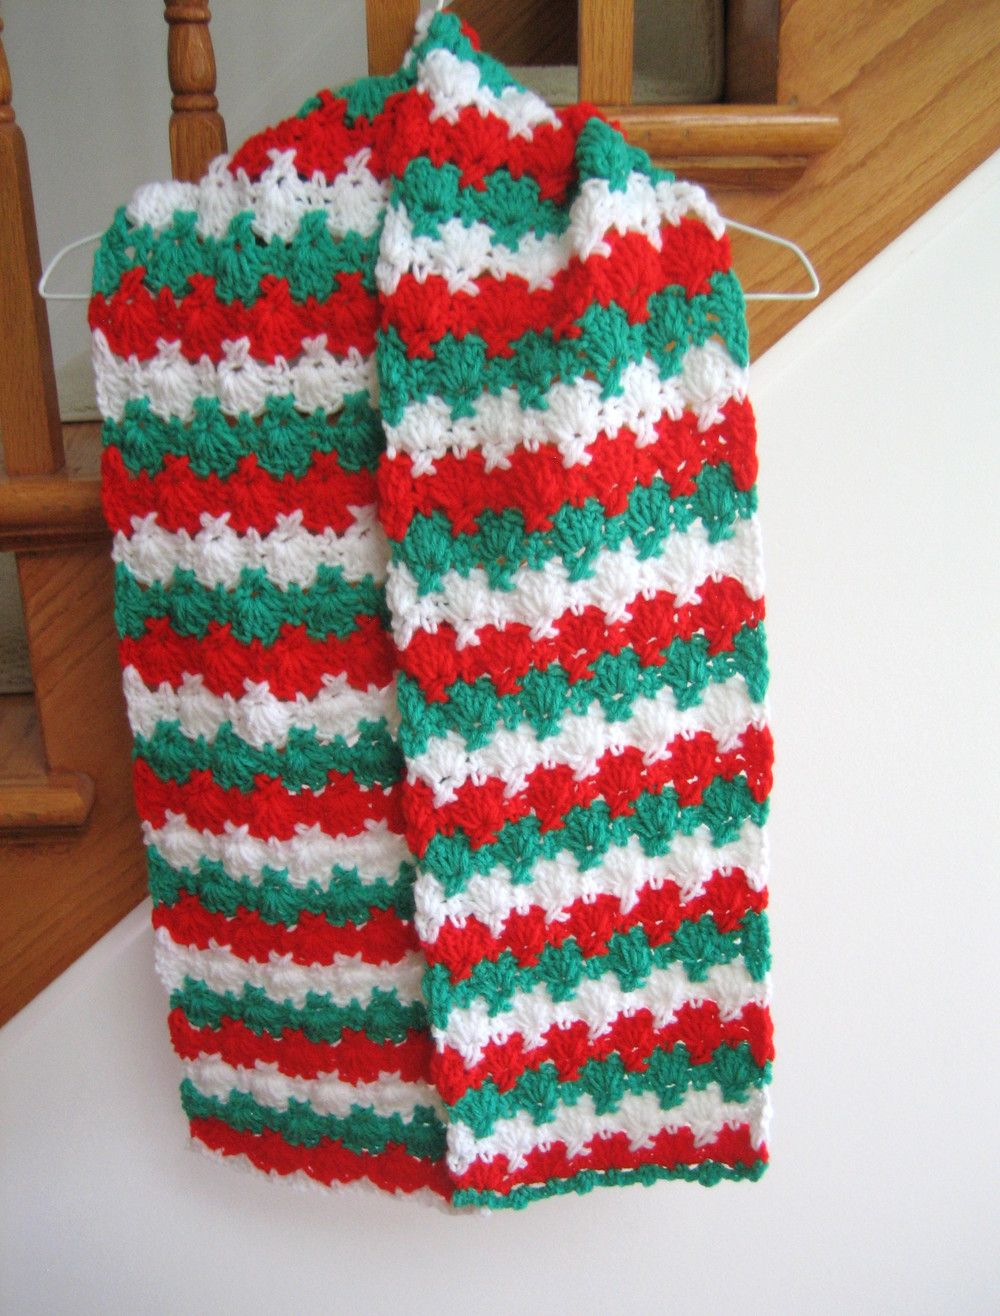 Holiday Criss Cross Crocheted Scarf Pattern | Bufandas de ganchillo ...